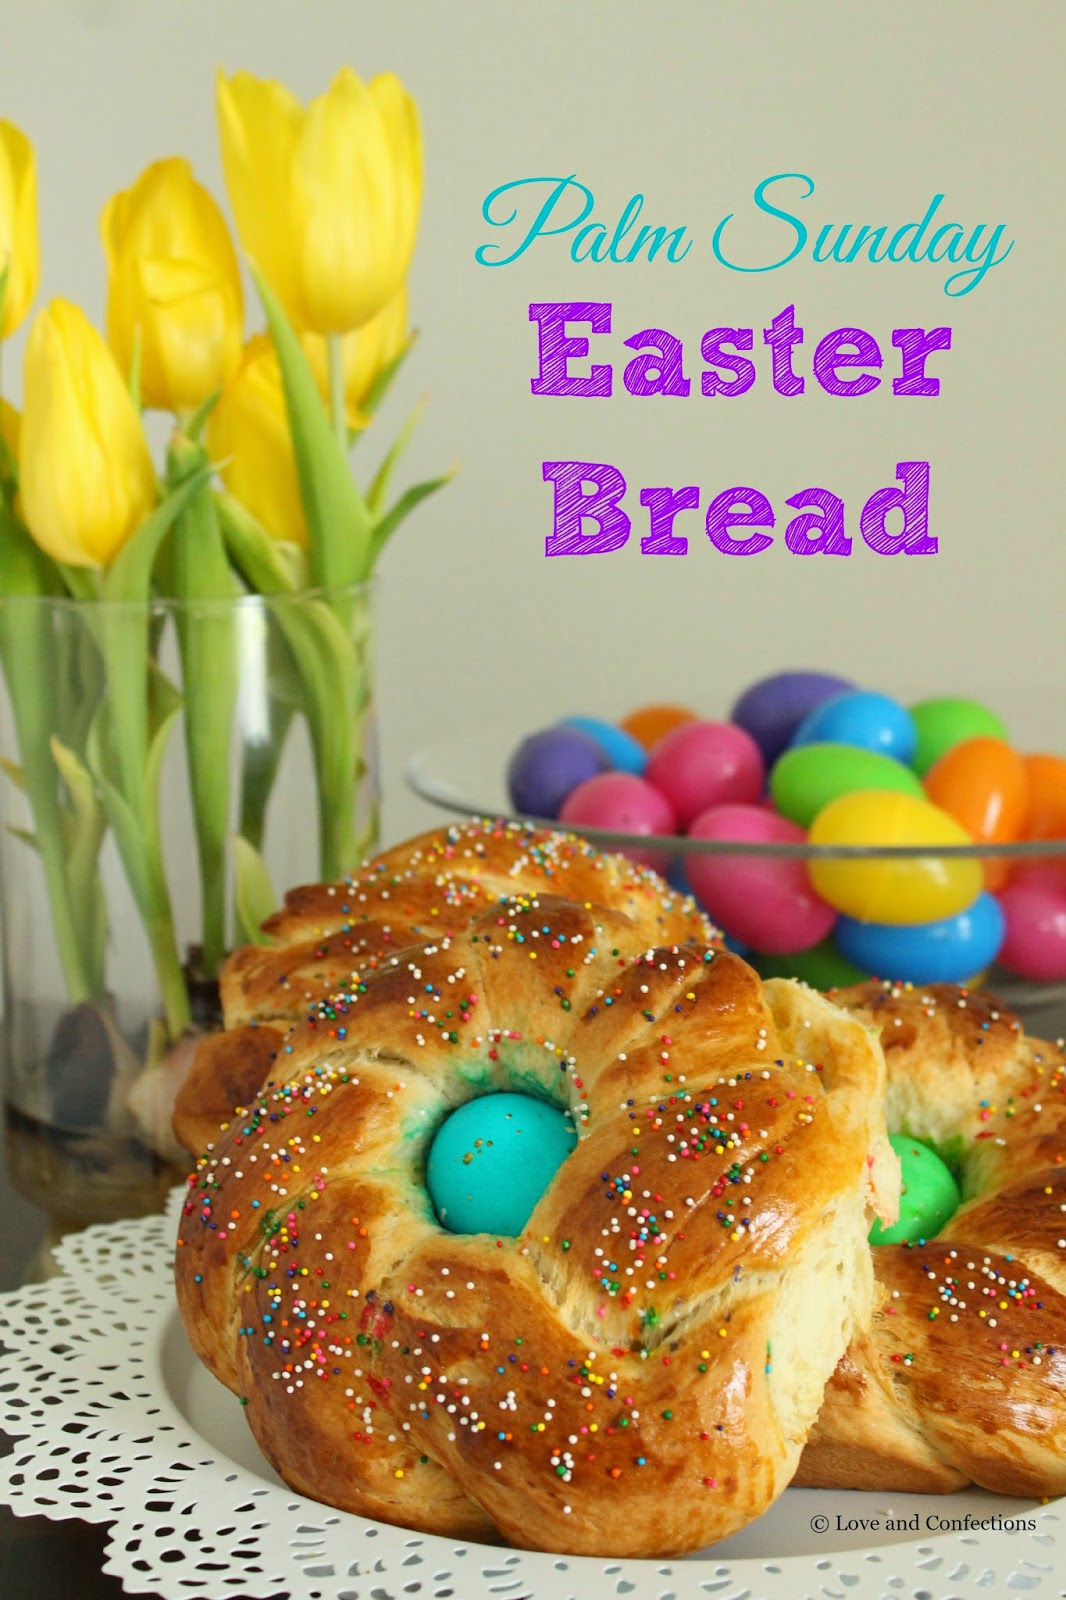 Palm Sunday Easter Bread - Pane di Pasqua - from LoveandConfections.com